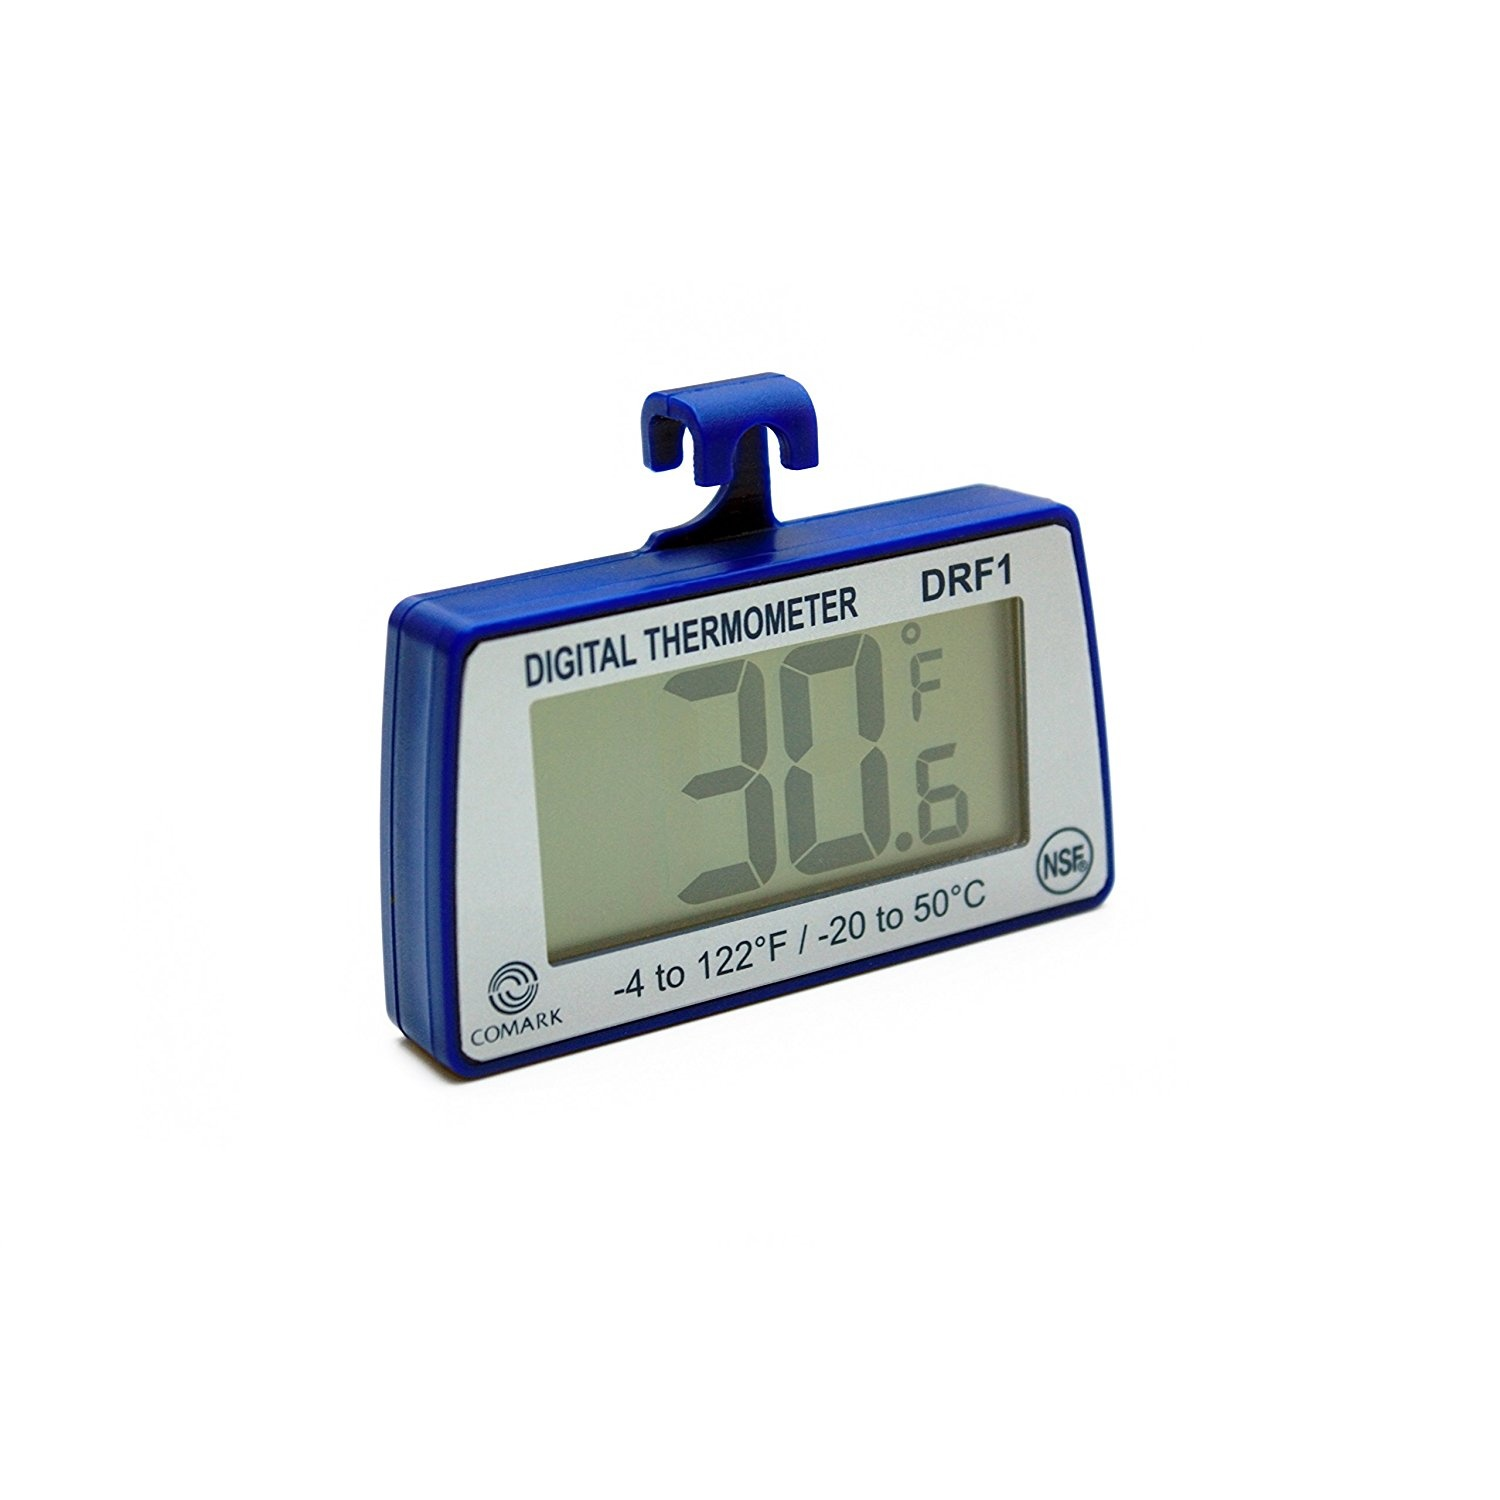 Küchenprofi Thermometer Digital Comark Instruments Drf1 Digital Refrigerator And Freezer Thermometer